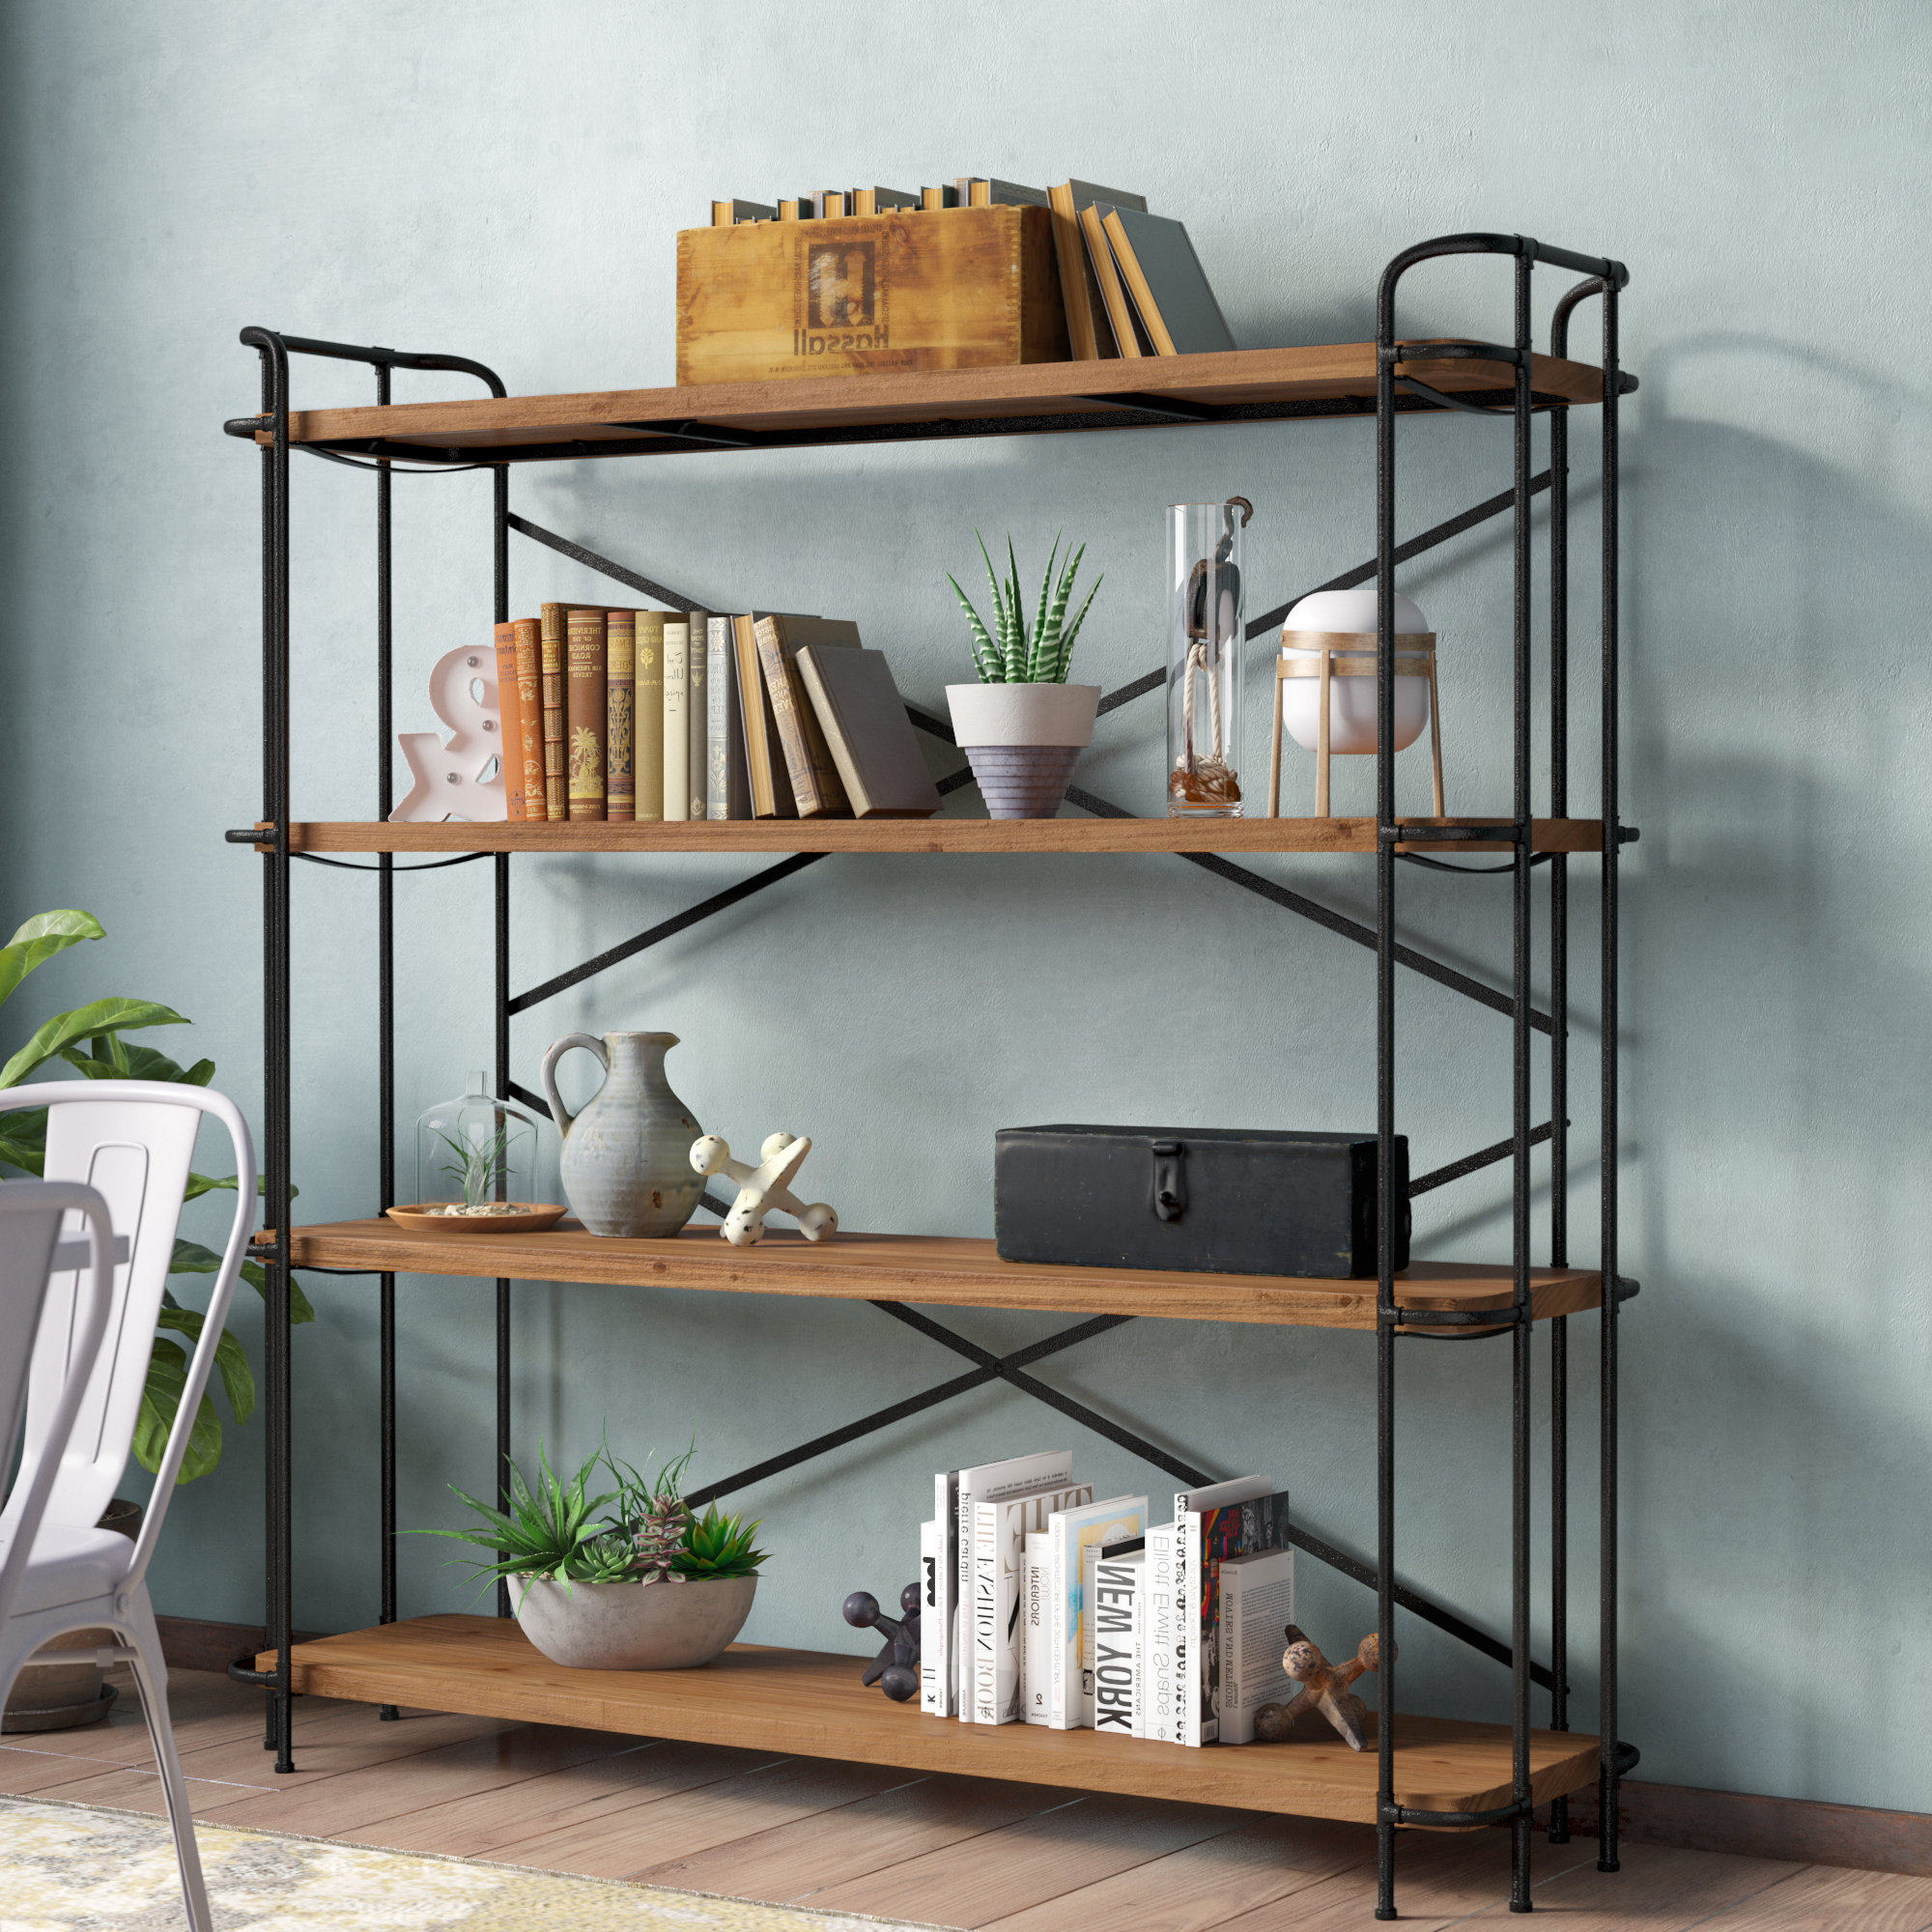 Blairs Etagere Bookcases Regarding Latest Universal Furniture Etagere (View 6 of 20)